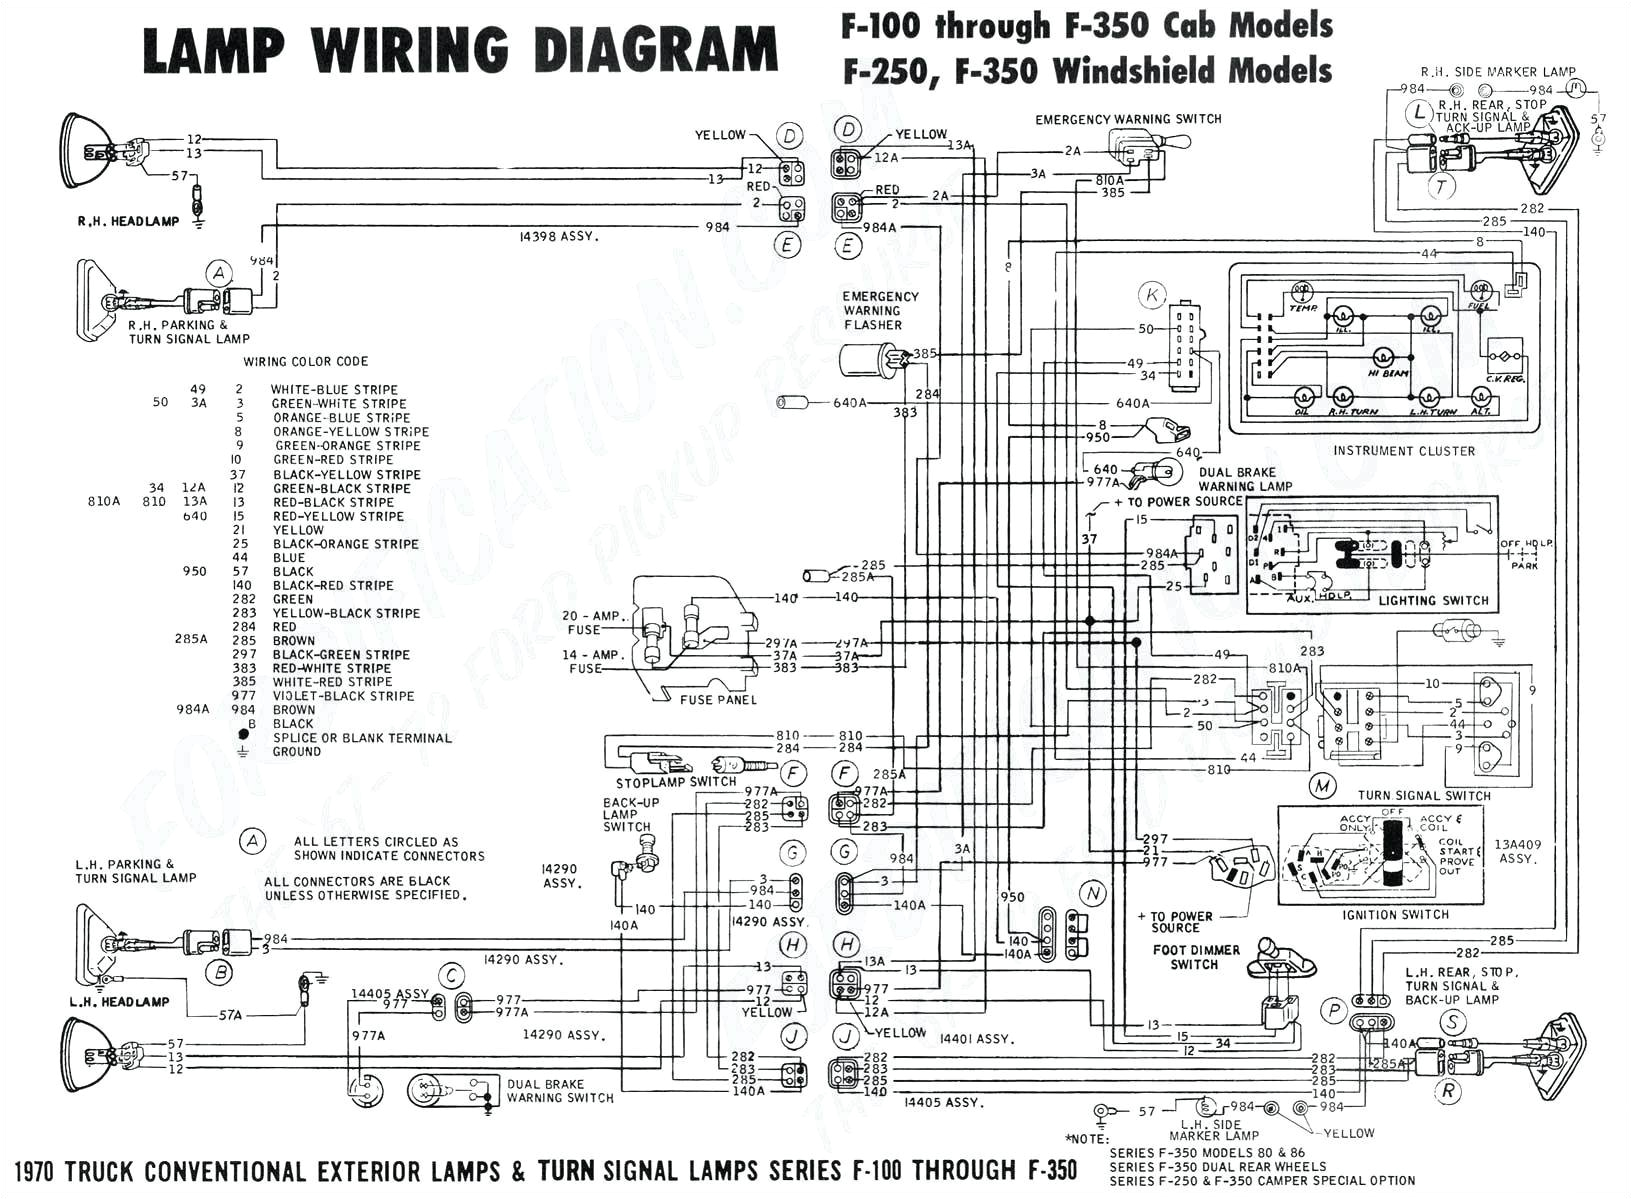 2014 ford Explorer Wiring Diagram Xtreme 550 Wiring Diagram Blog Wiring Diagram